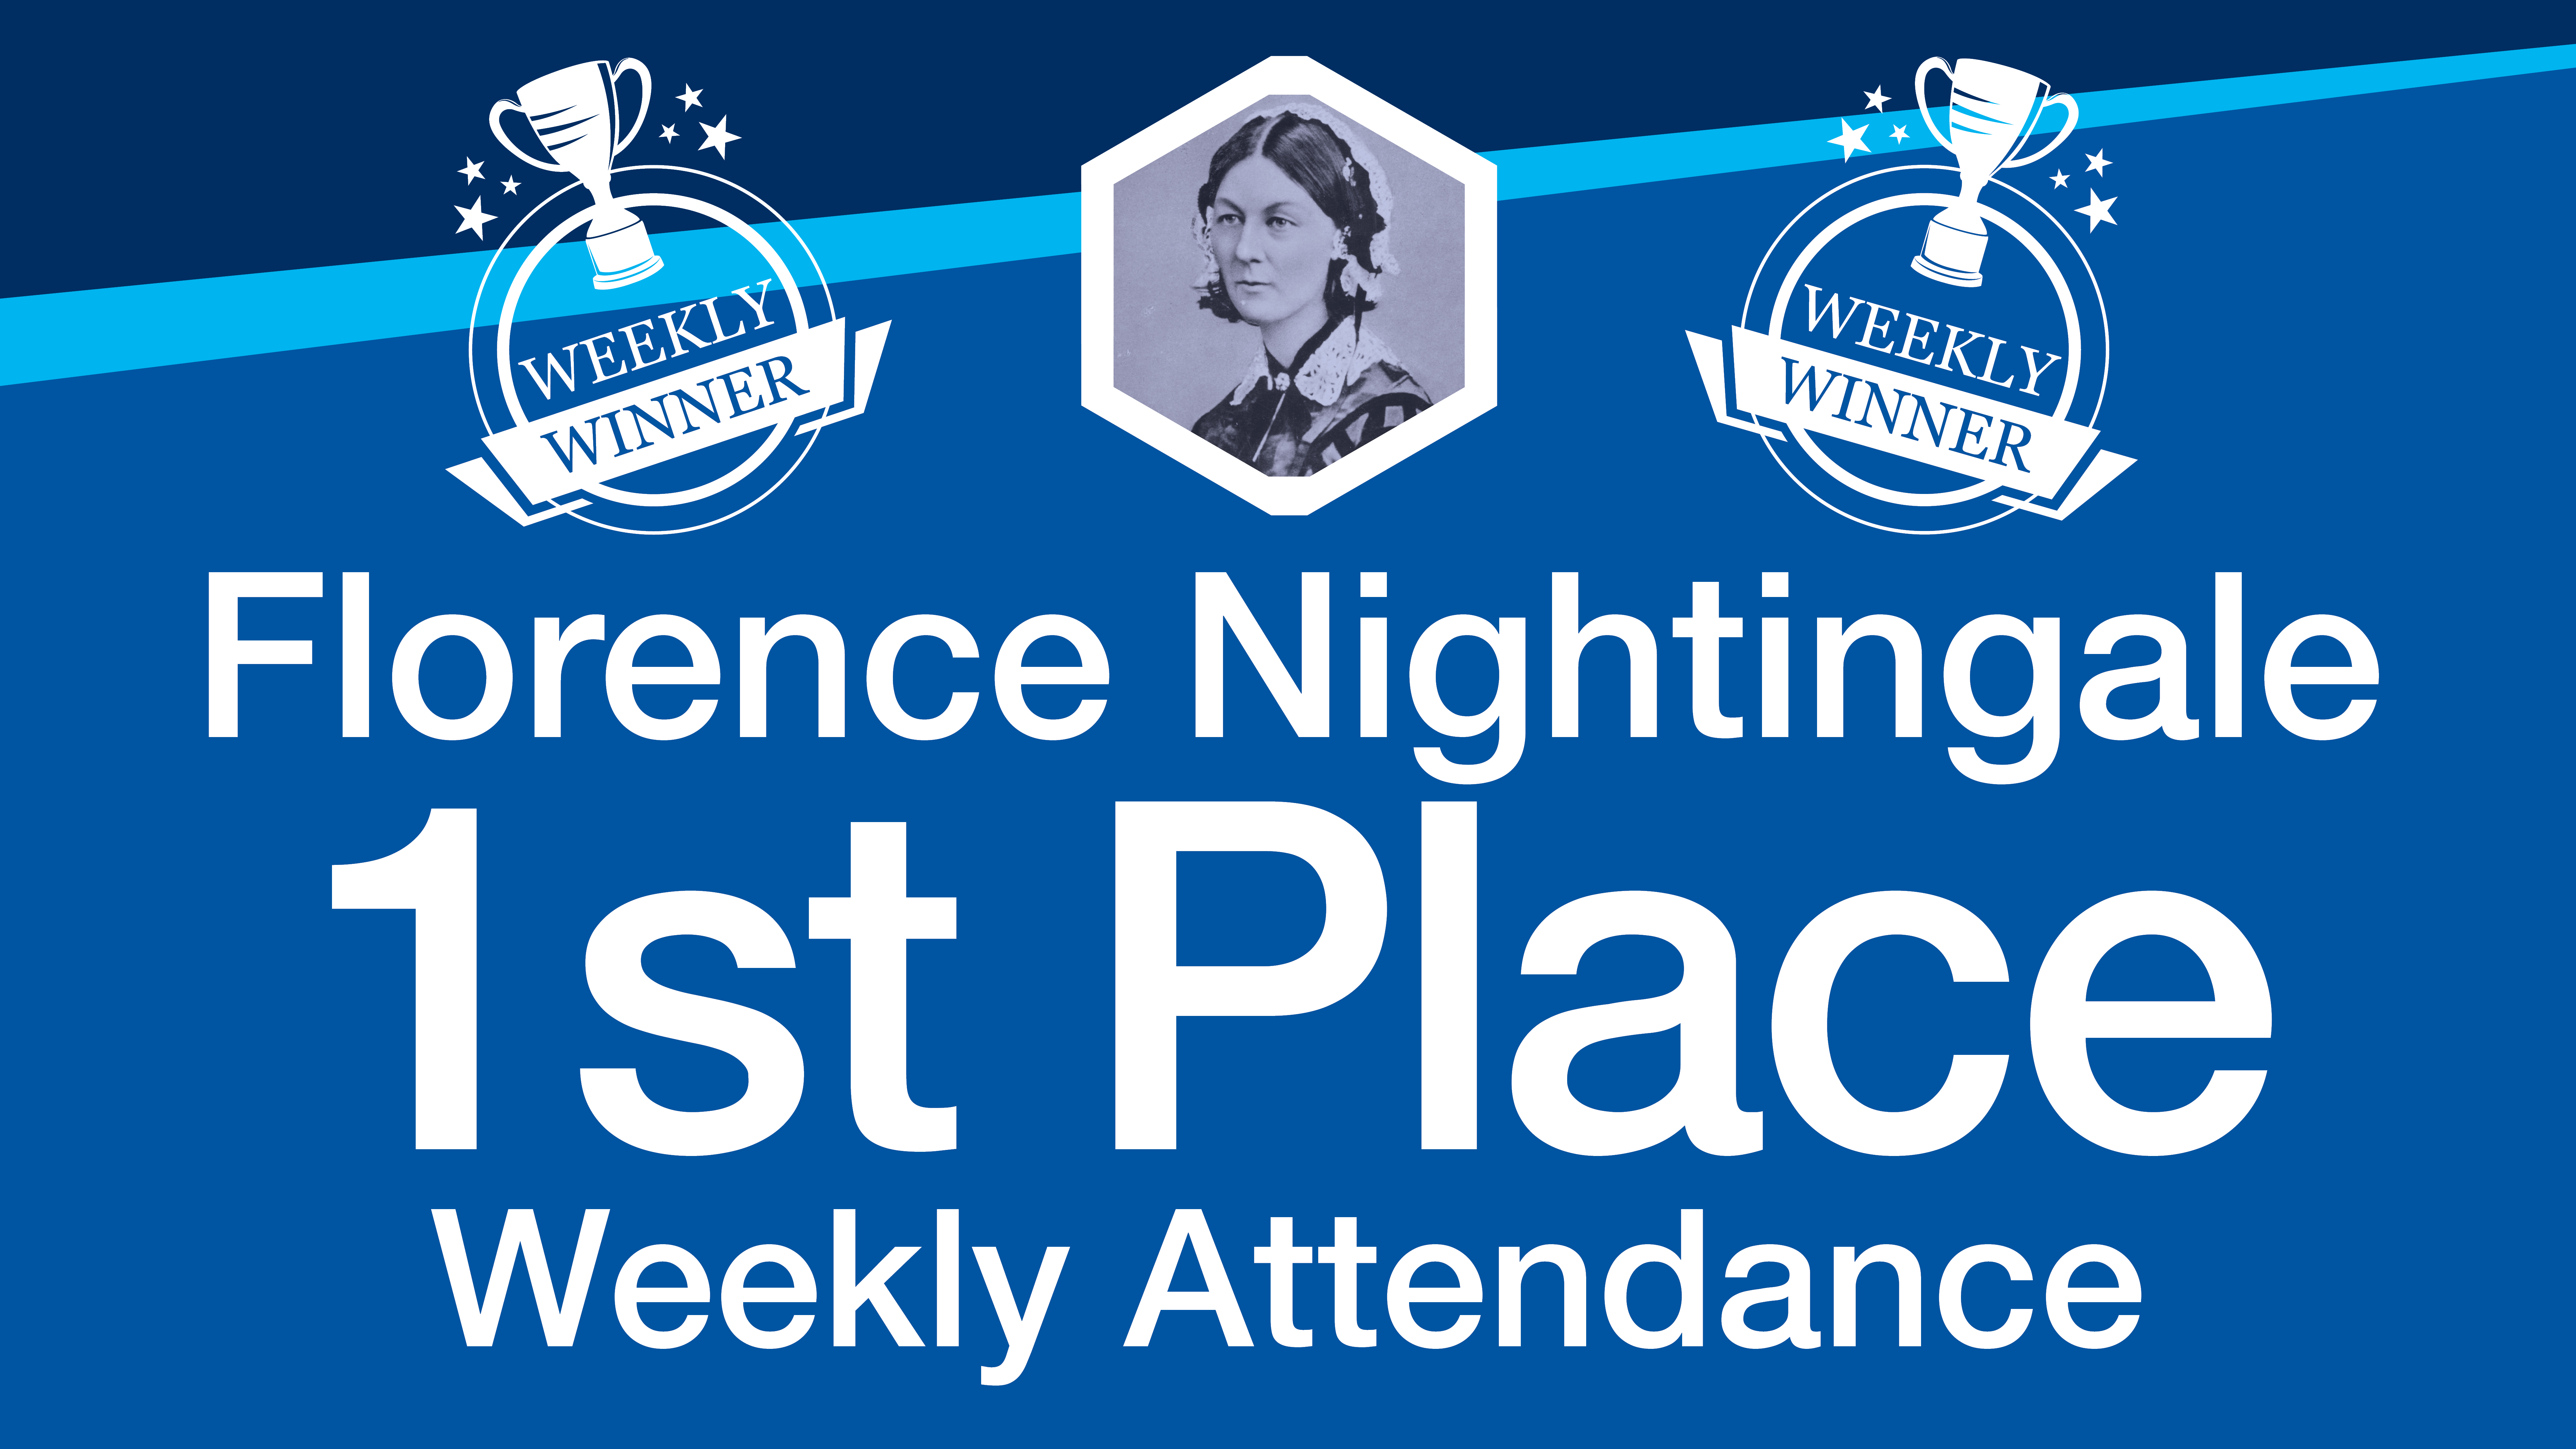 Congratulations to Florence Nightingale for winning last week's attendance competition!